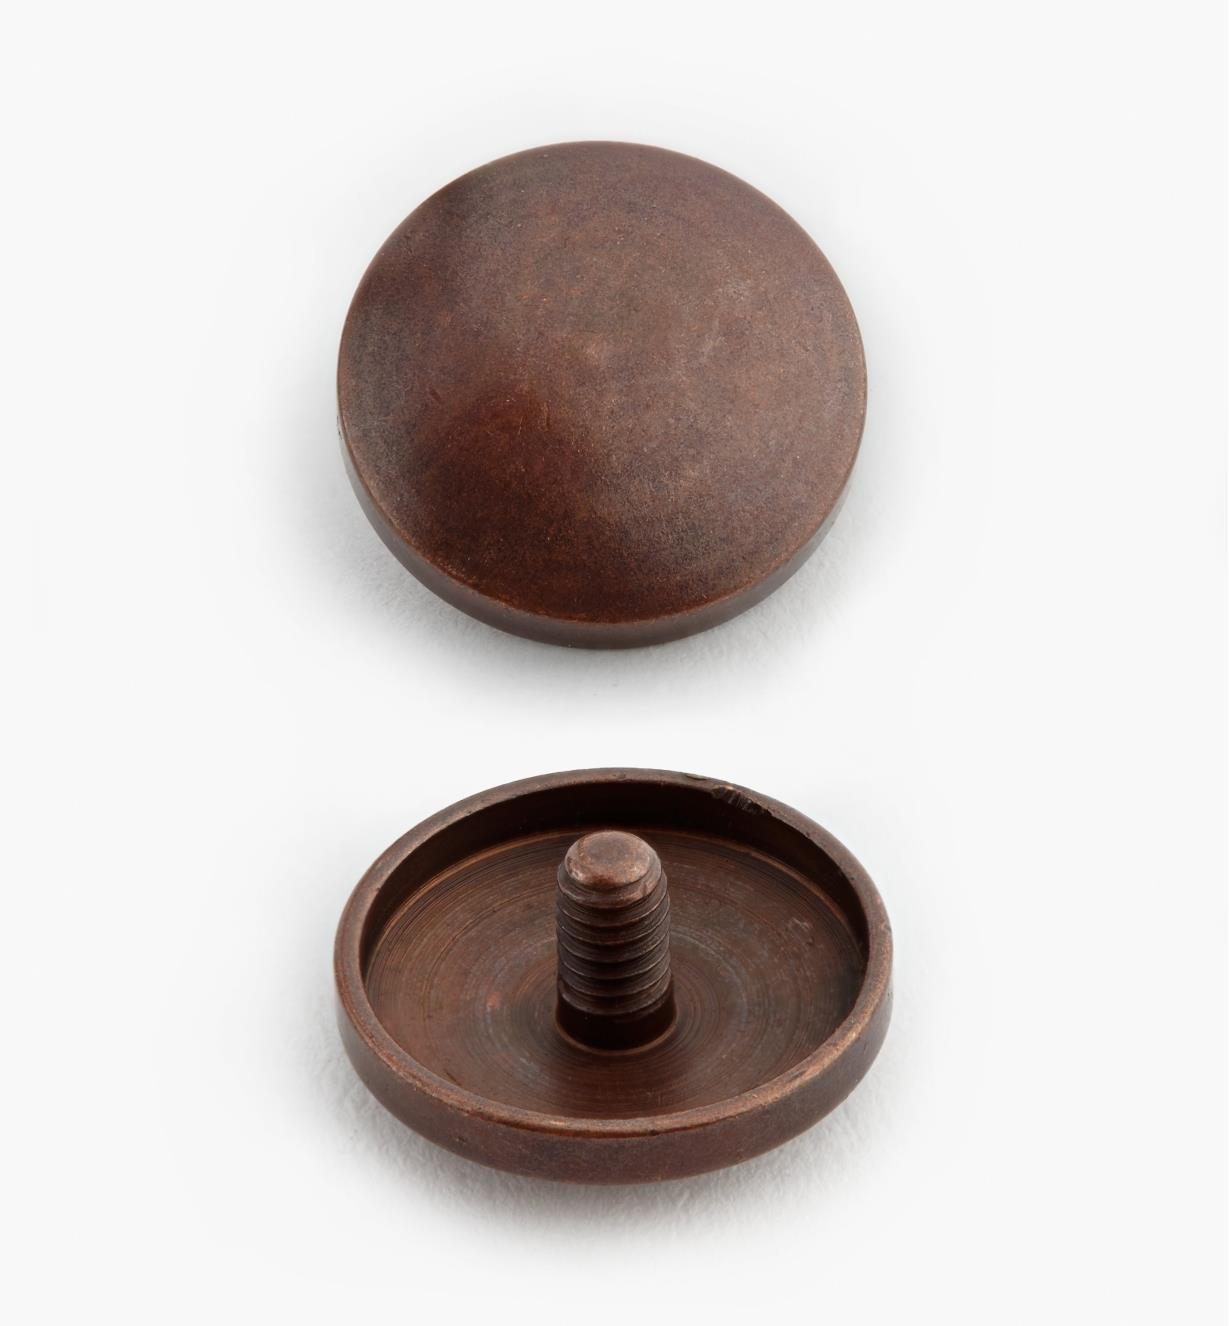 00K4202 - 15mm Bronze Caps, pkg. of 24